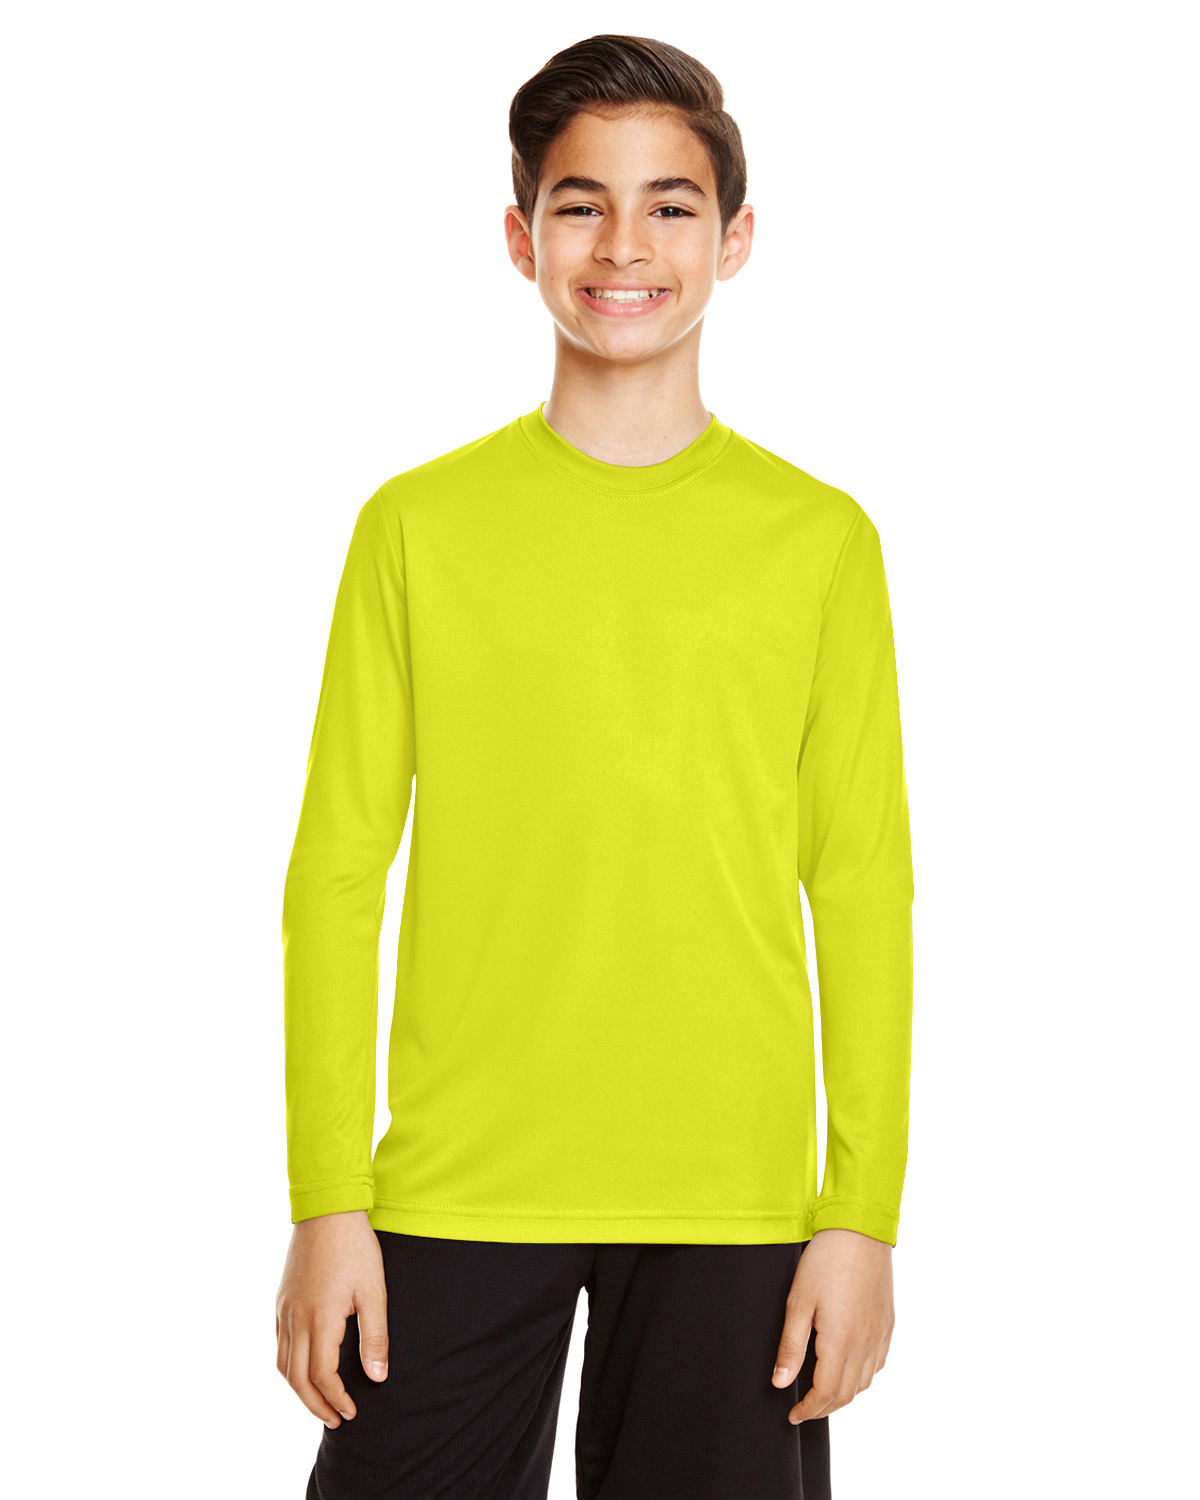 Youth Zone Performance Long-Sleeve T-Shirt